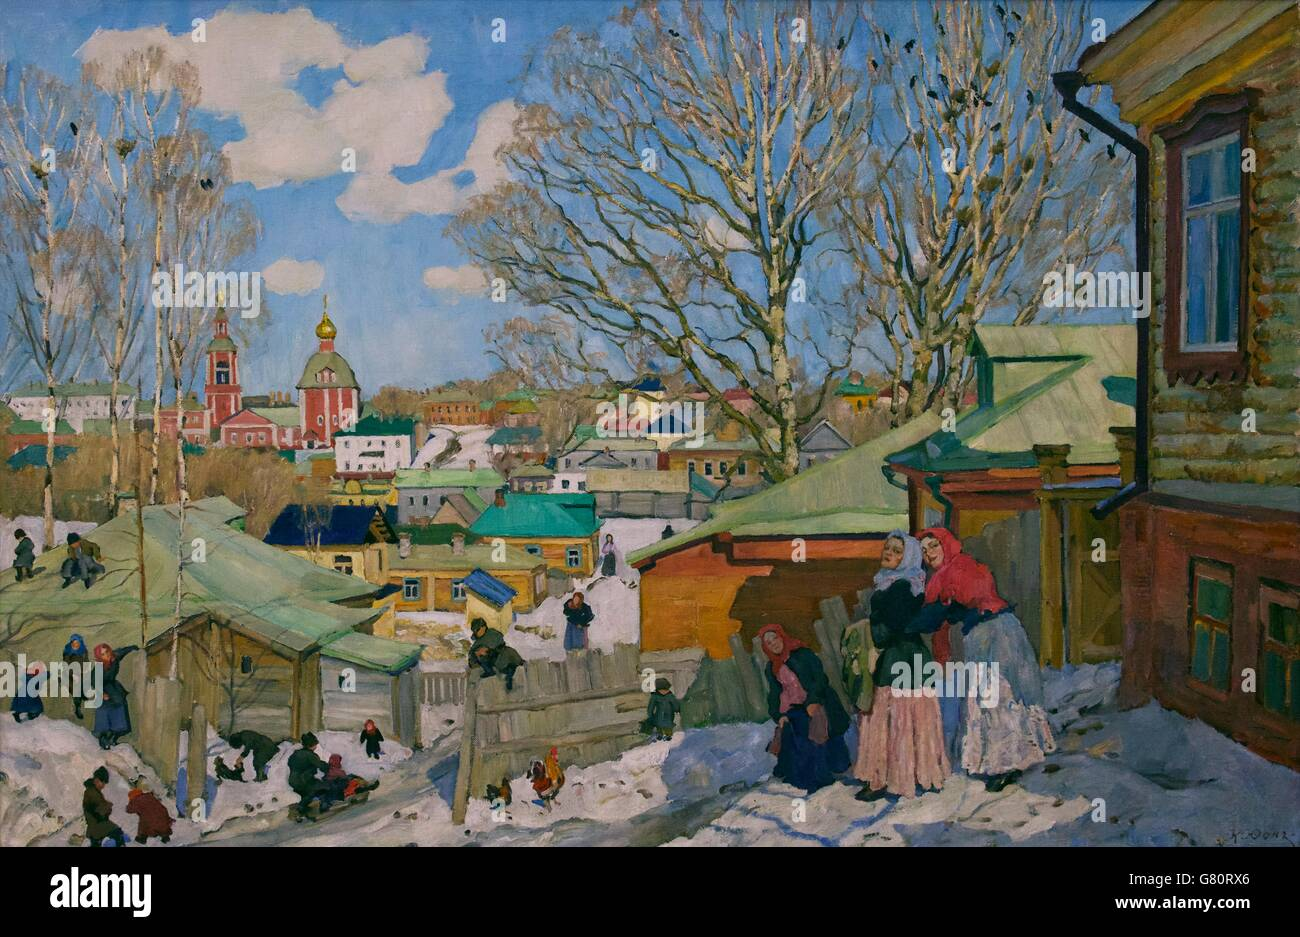 Sunny Day in Spring, by Konstantin Yuon, 1910, State Russian Museum, Saint Petersburg, Russia - Stock Image